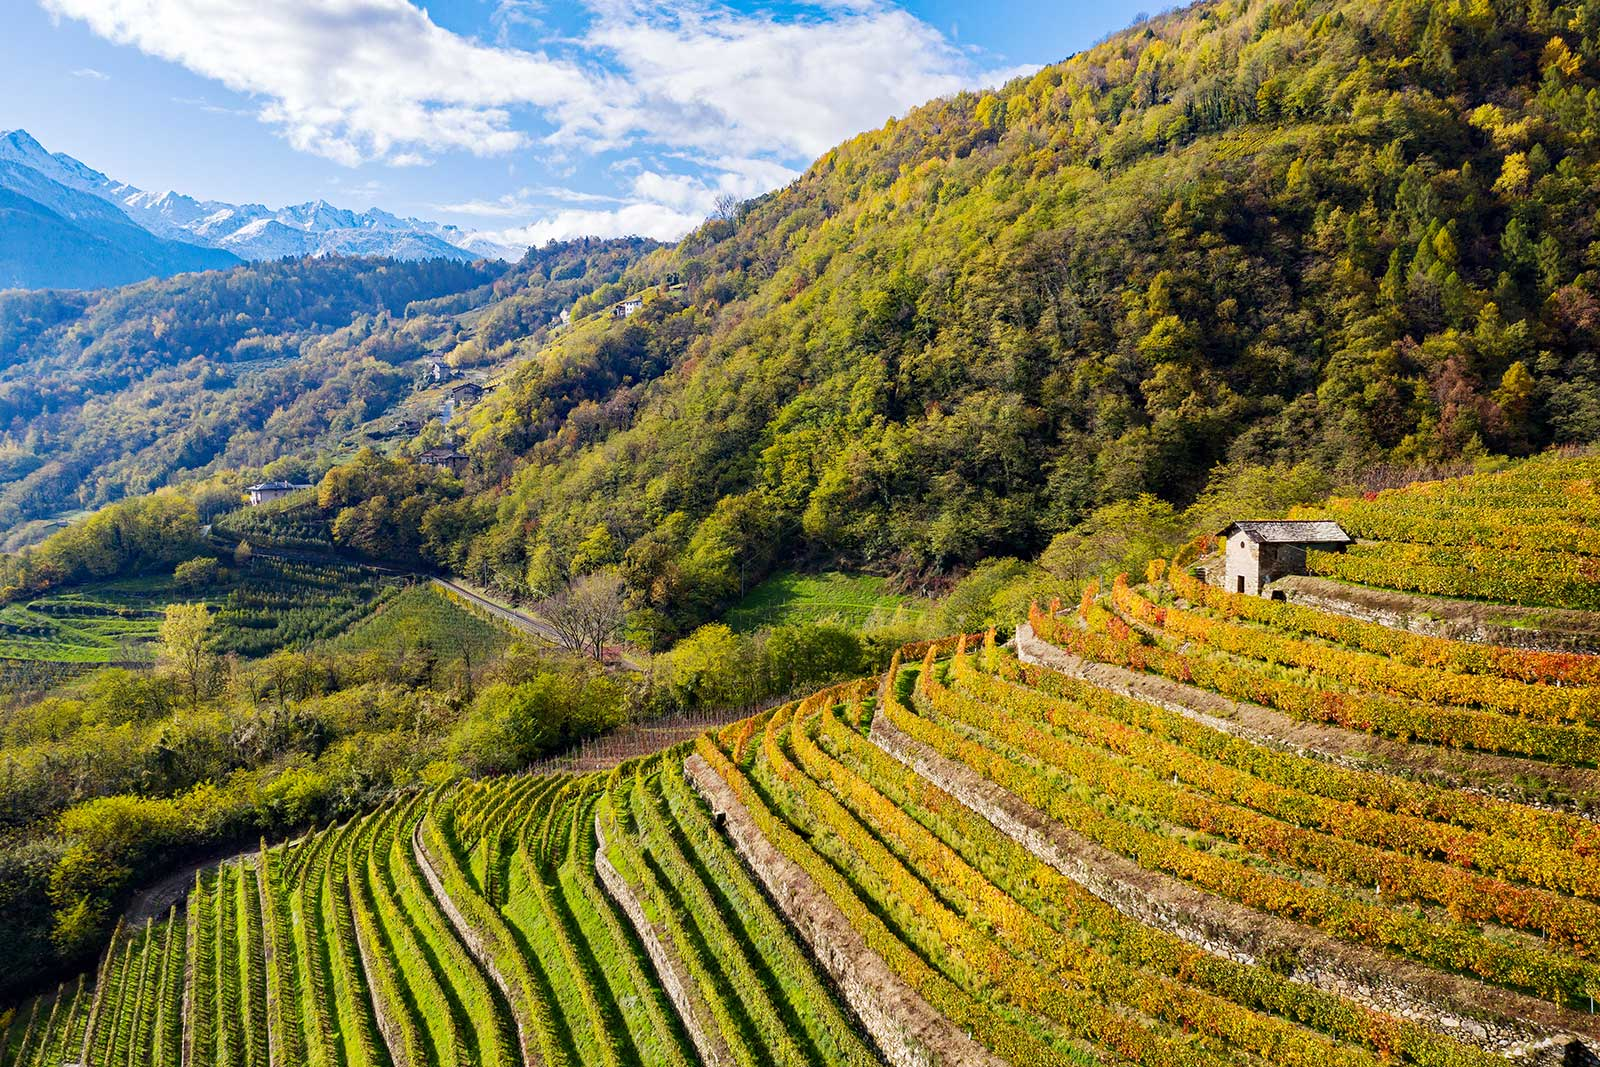 The terraced vineyards of the Bianzone commune in Valtellina, Lombardy, Italy.